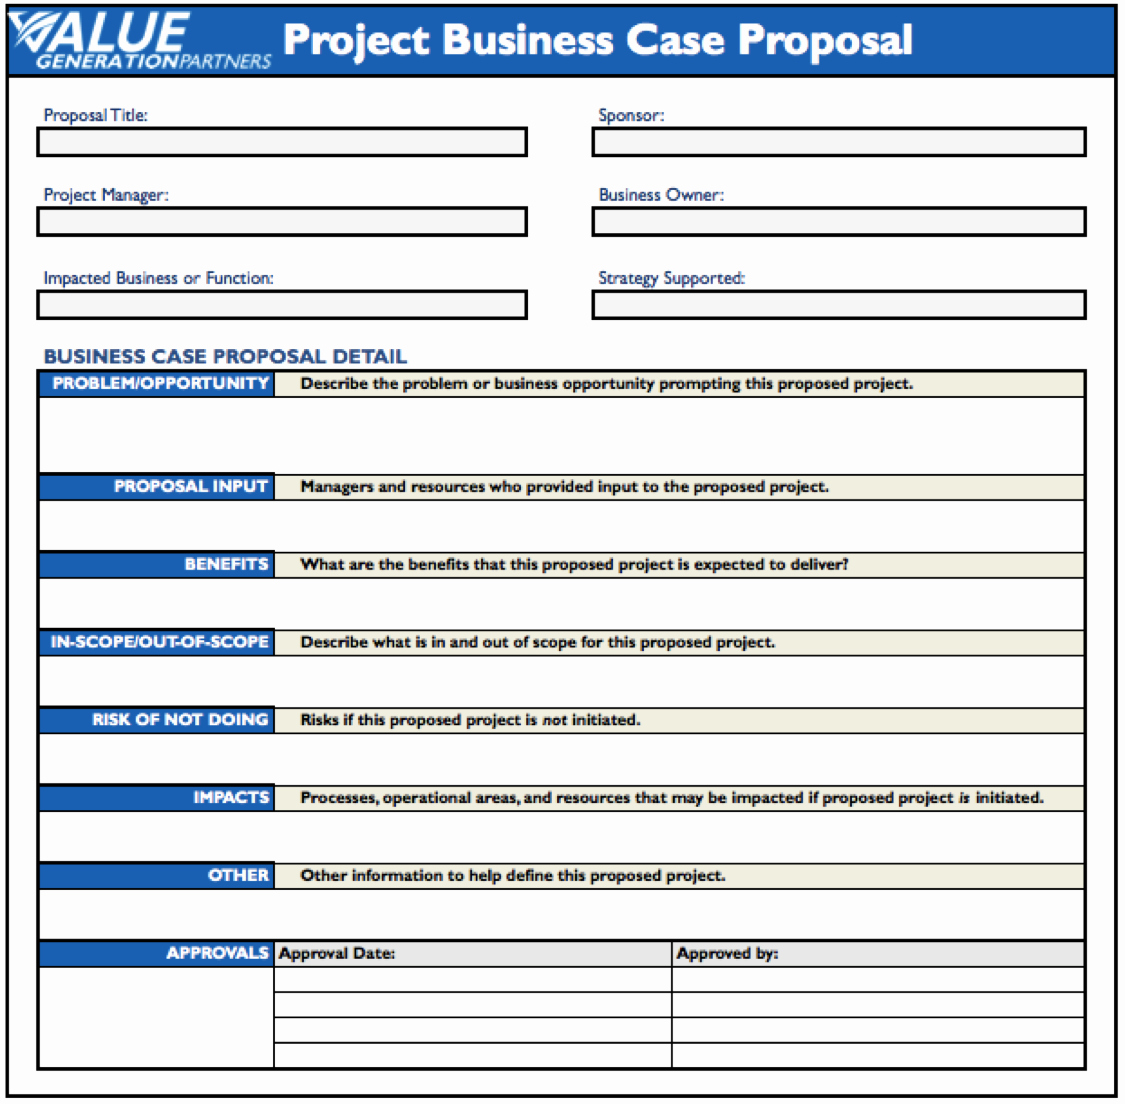 Business Case Template Word Luxury Generating Value by Using A Project Business Case Proposal